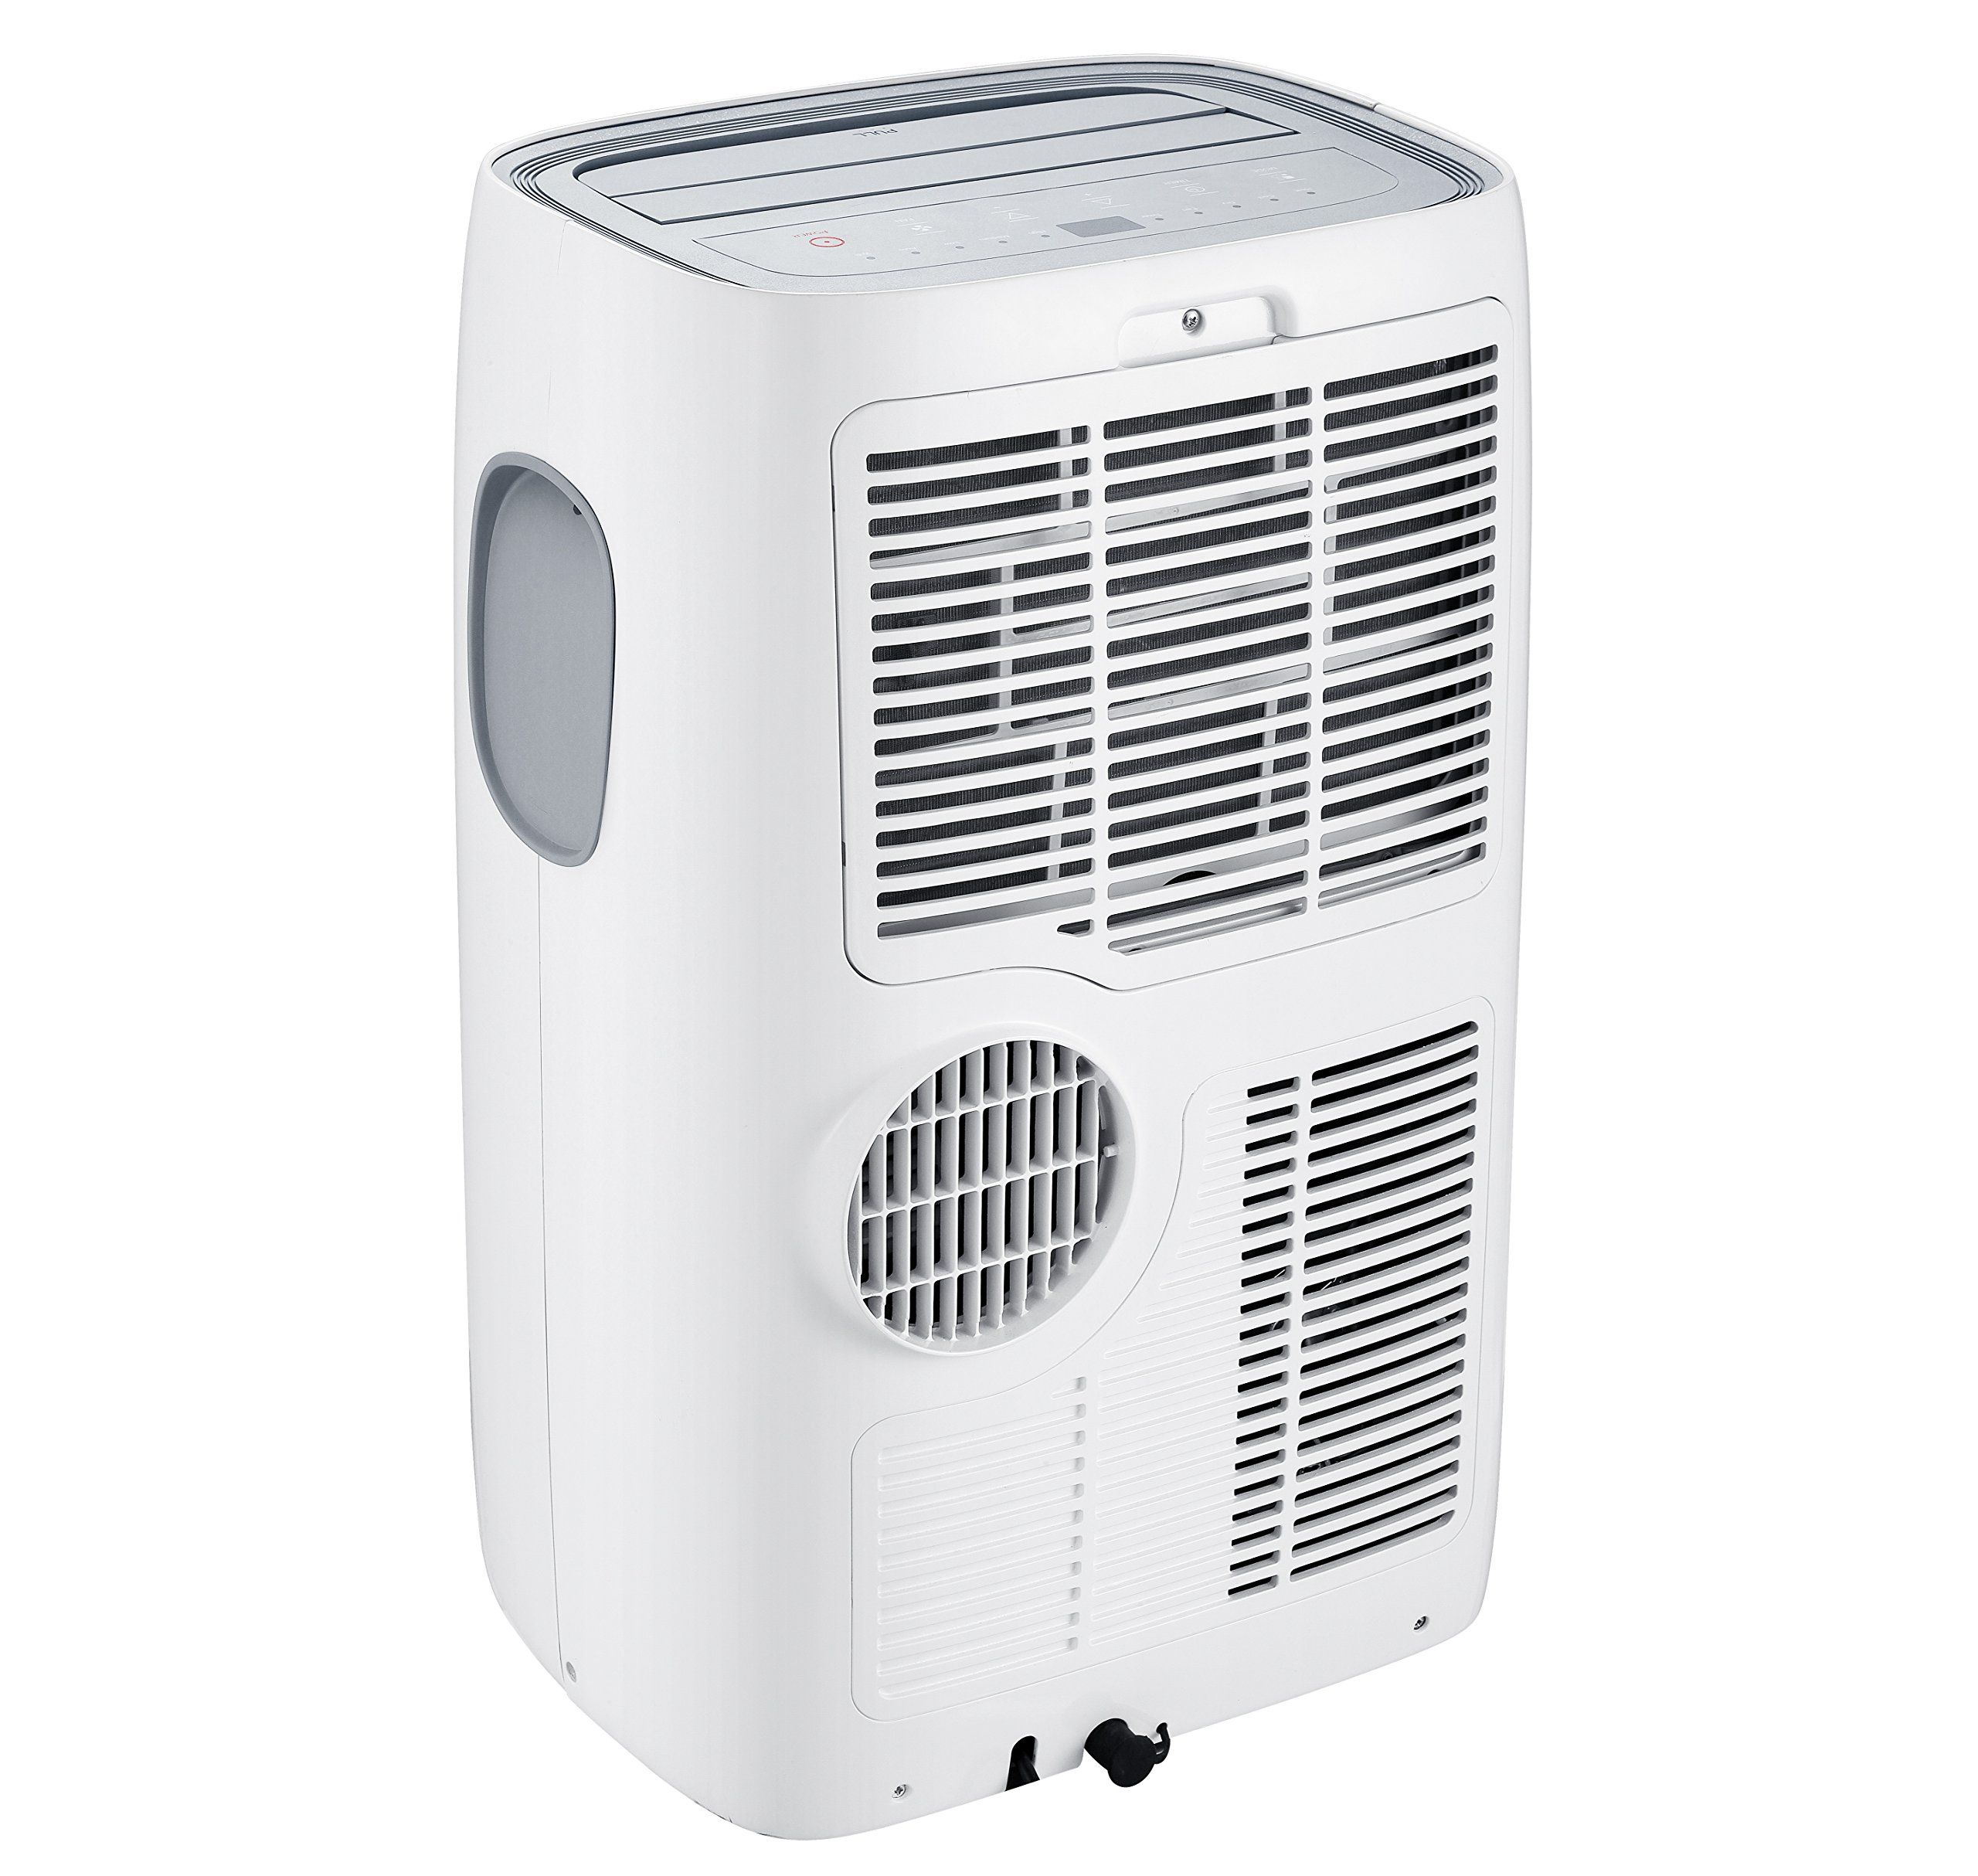 American Comfort 12K BTU Portable AC 4 in 1 Heater Air